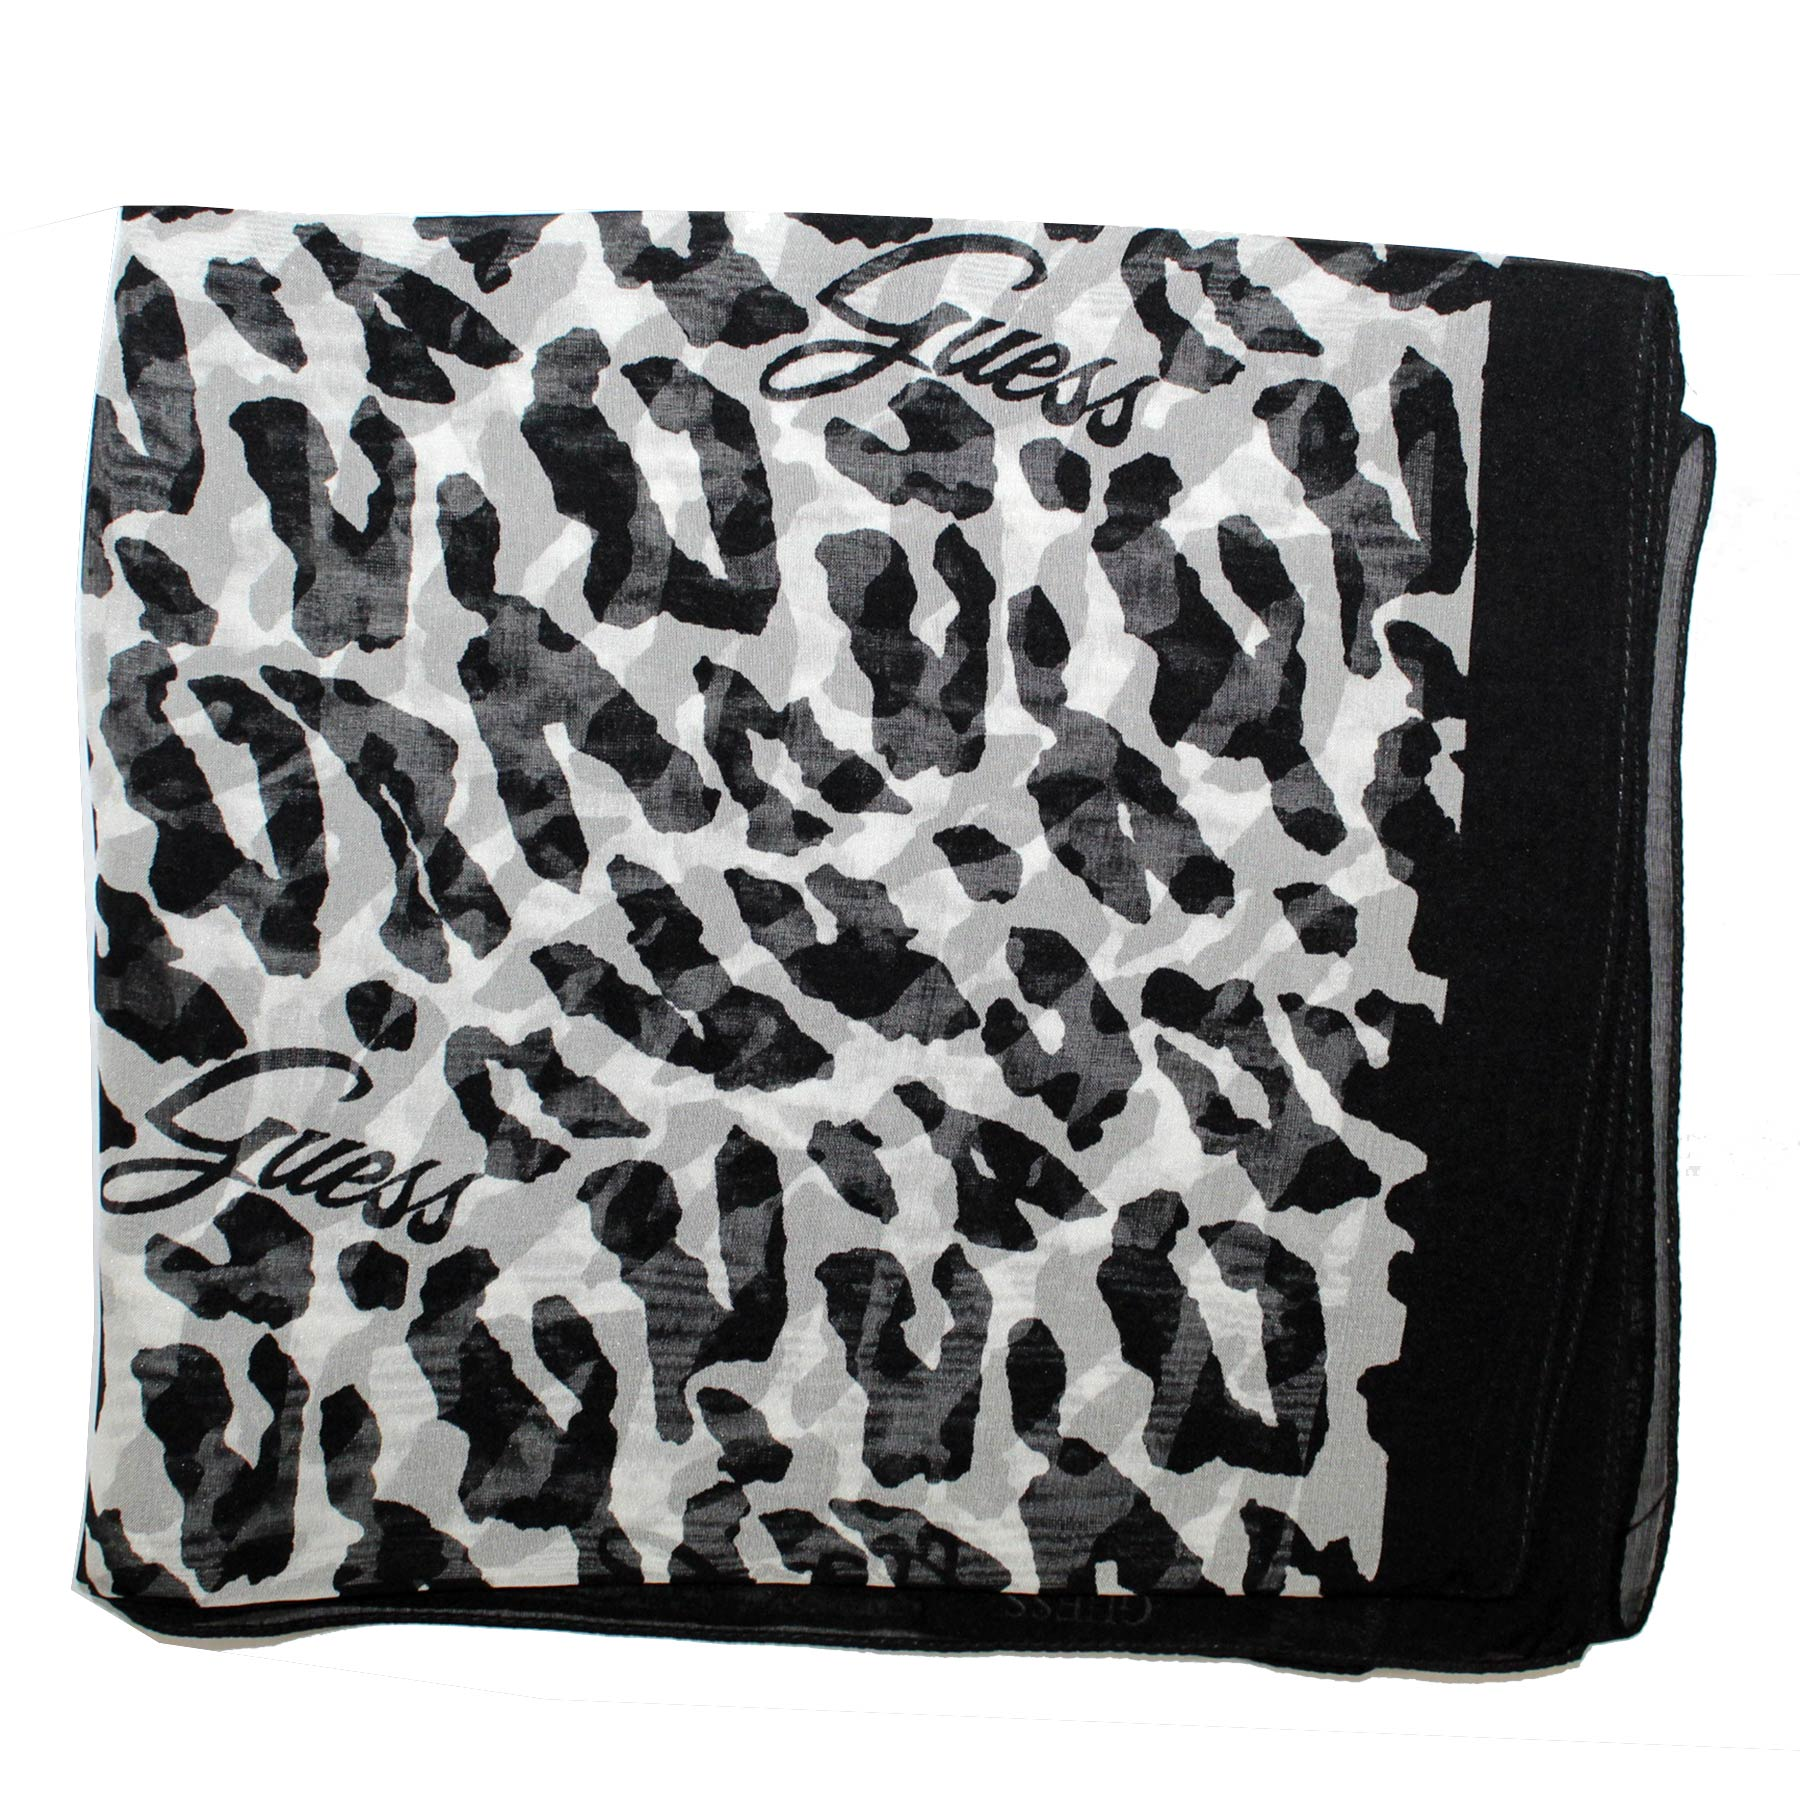 Guess Scarf Black White Animal Print - Chiffon Silk Shawl SALE